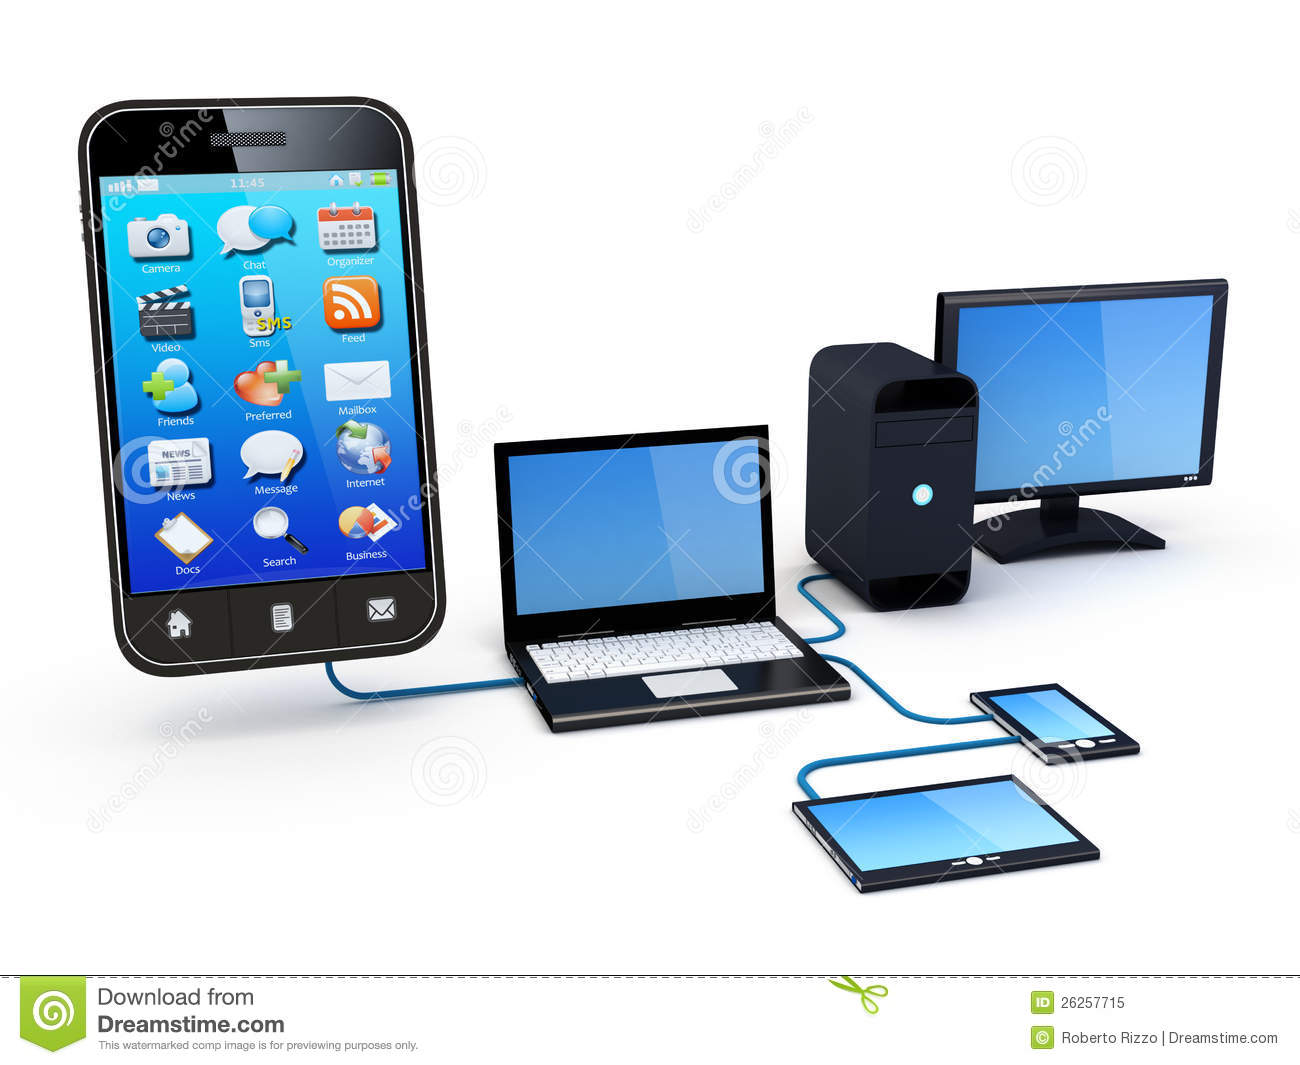 how to see all devices on network